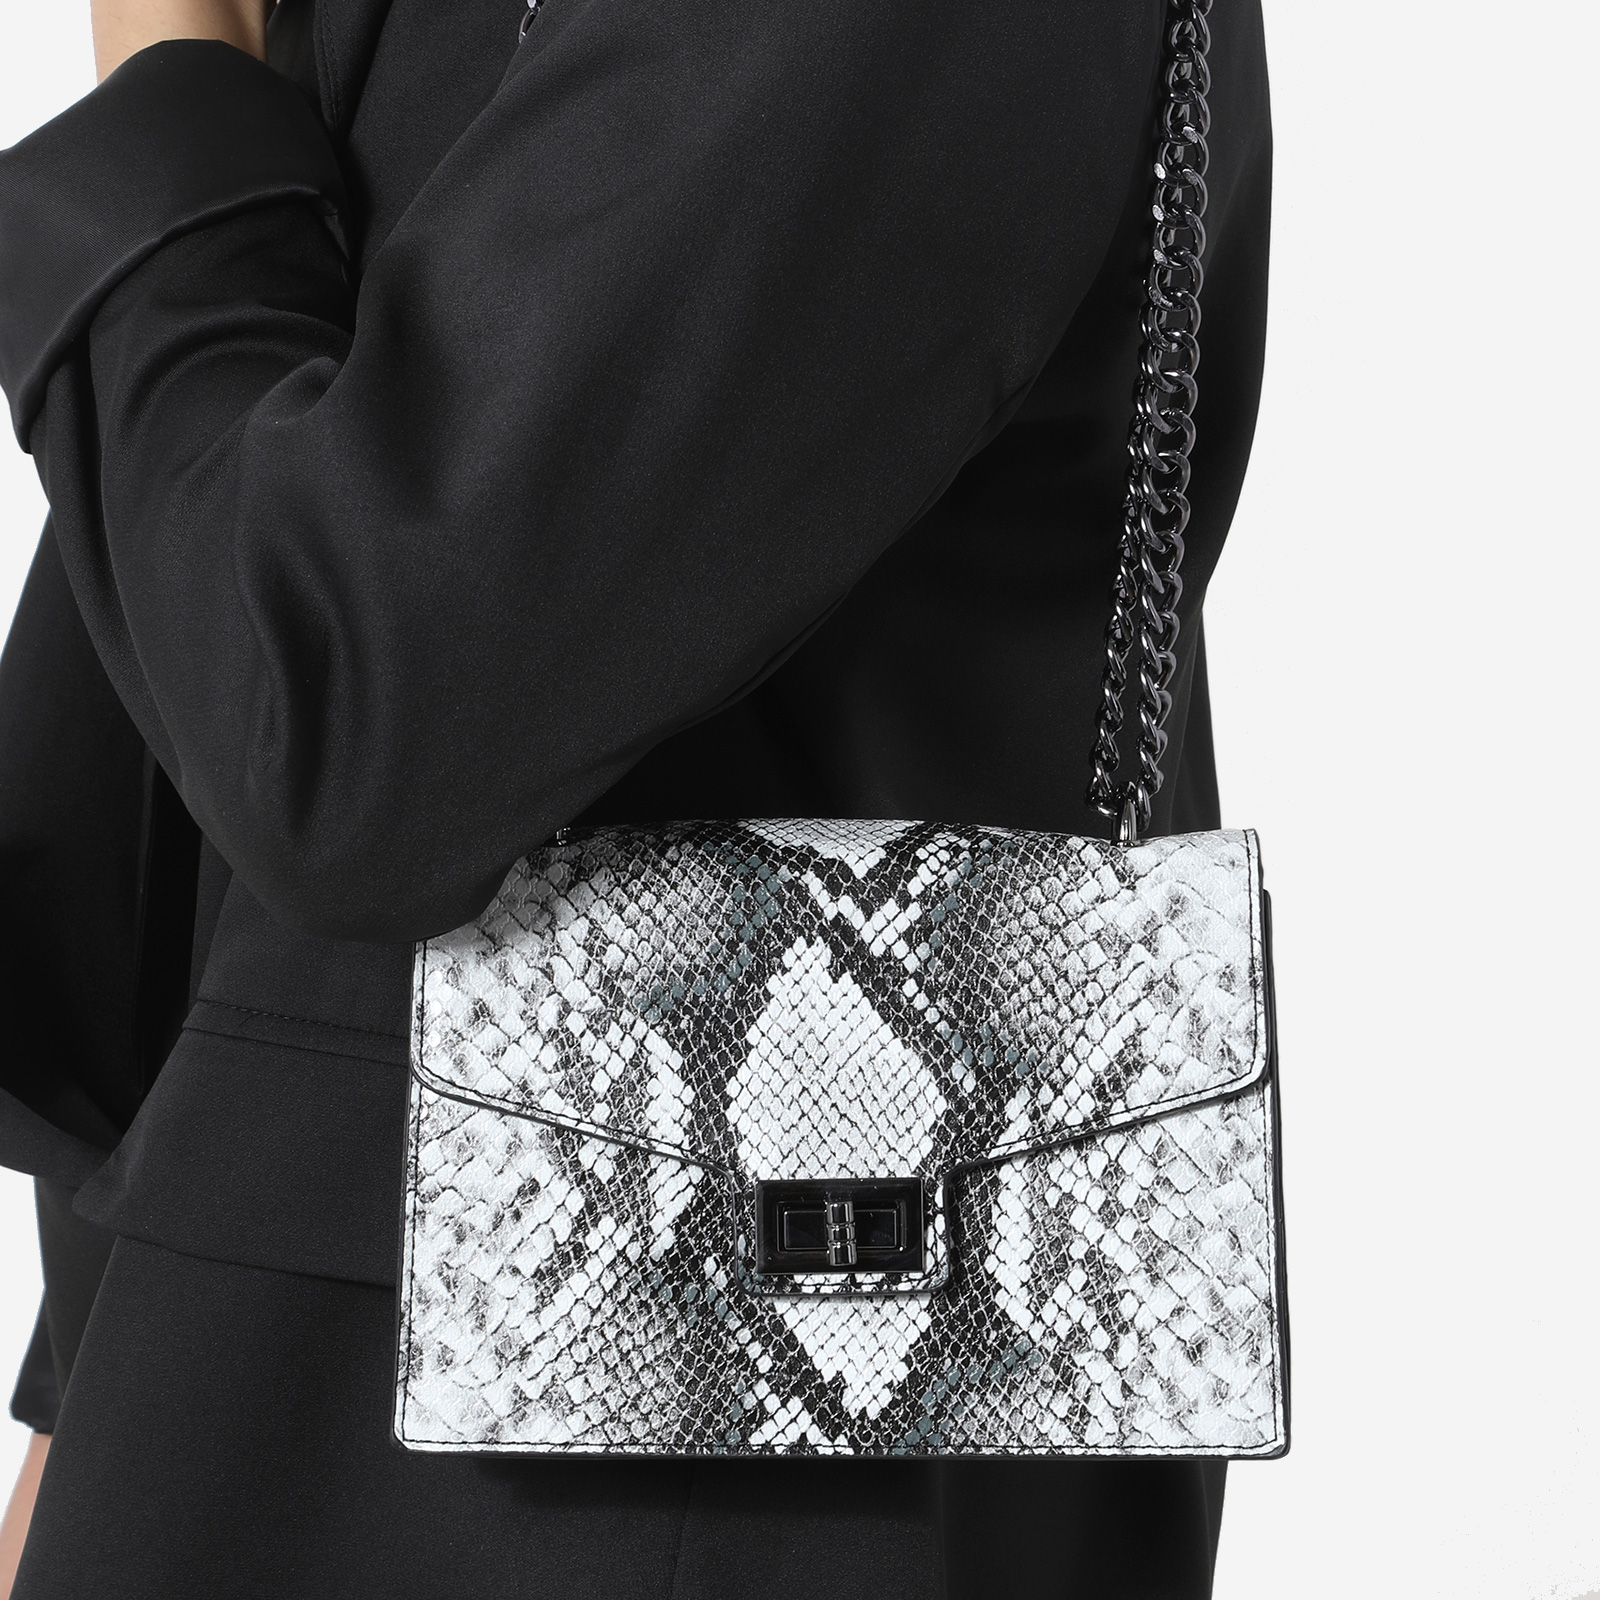 Chain Detail Cross Body Bag In Black And White Snake Print Faux Leather